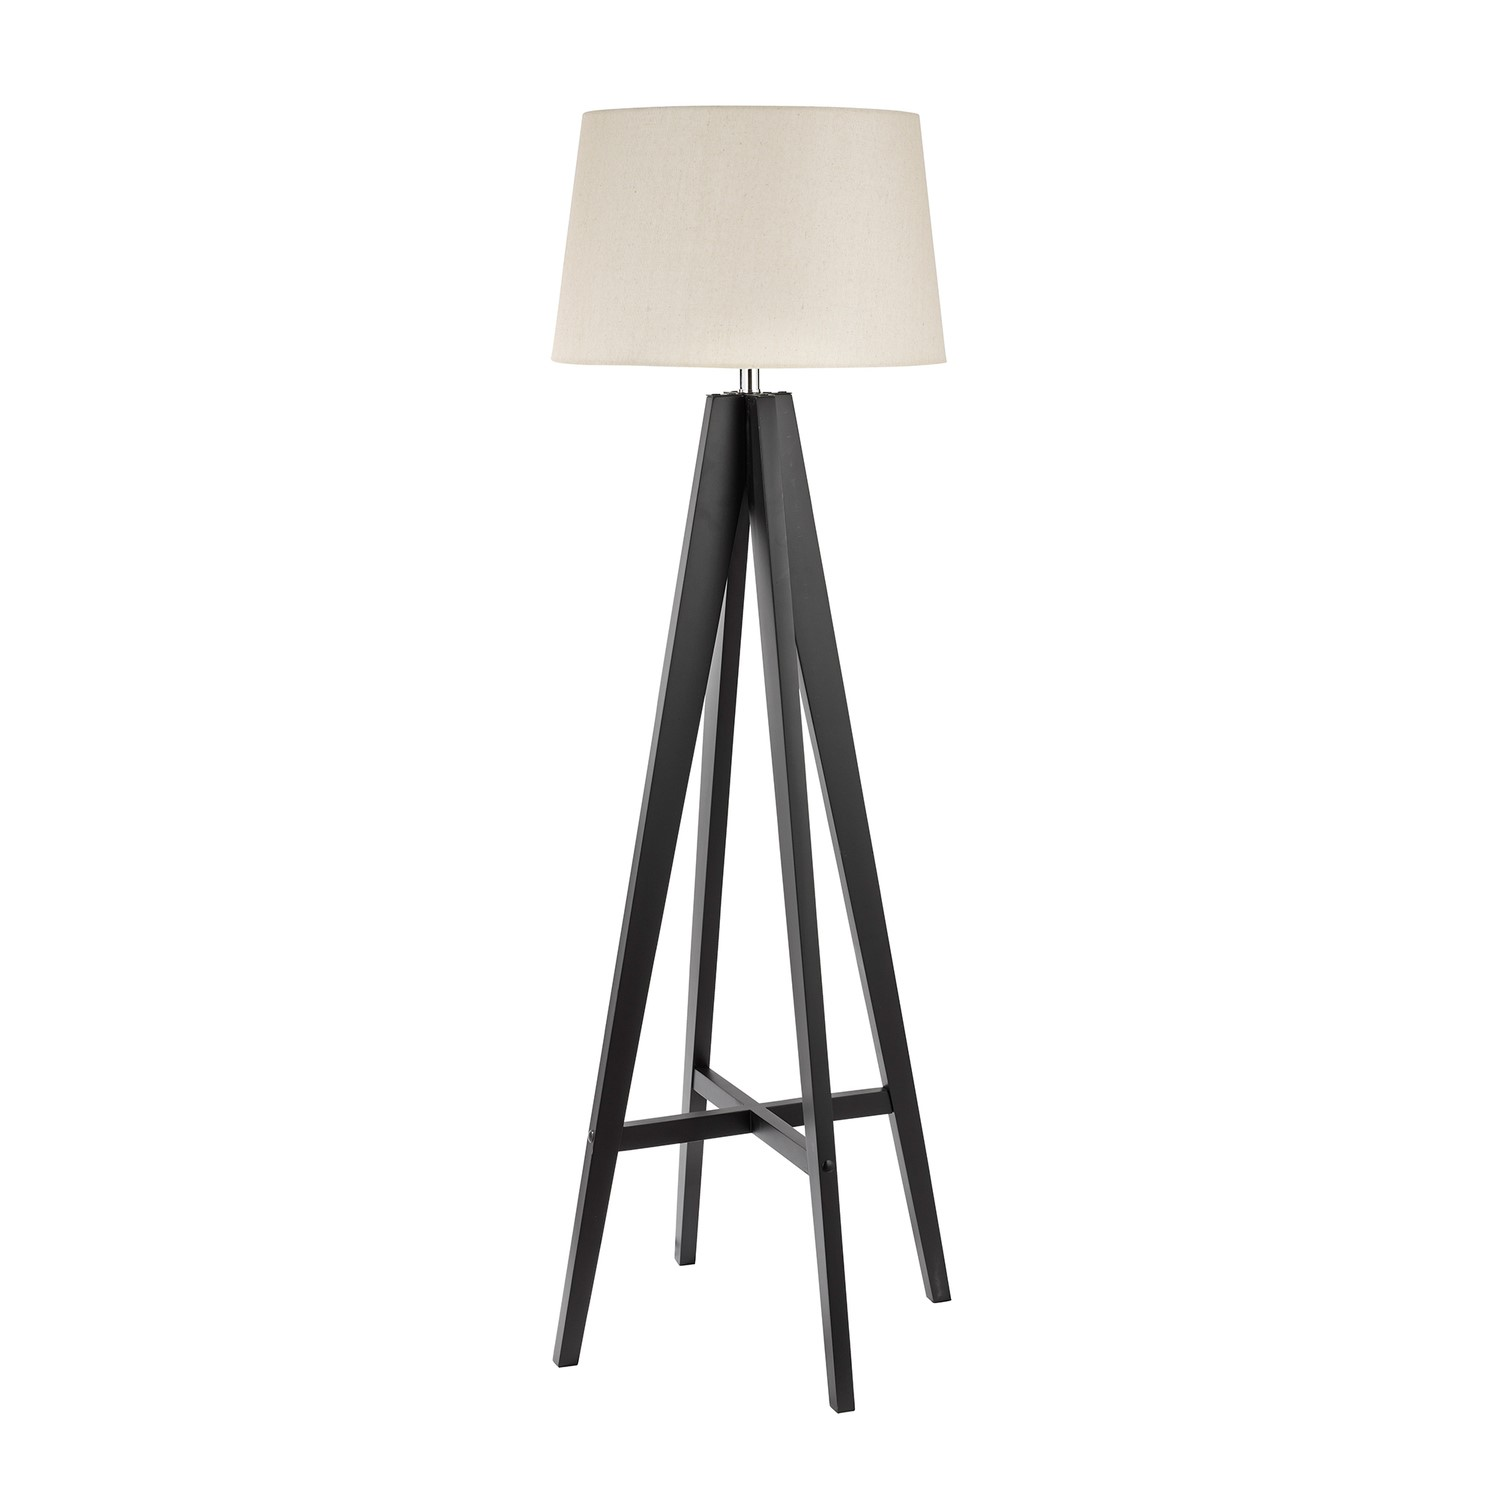 Tripod Floor Lamp With Dark Wood Base Cream Shade Searchlight Furniture123